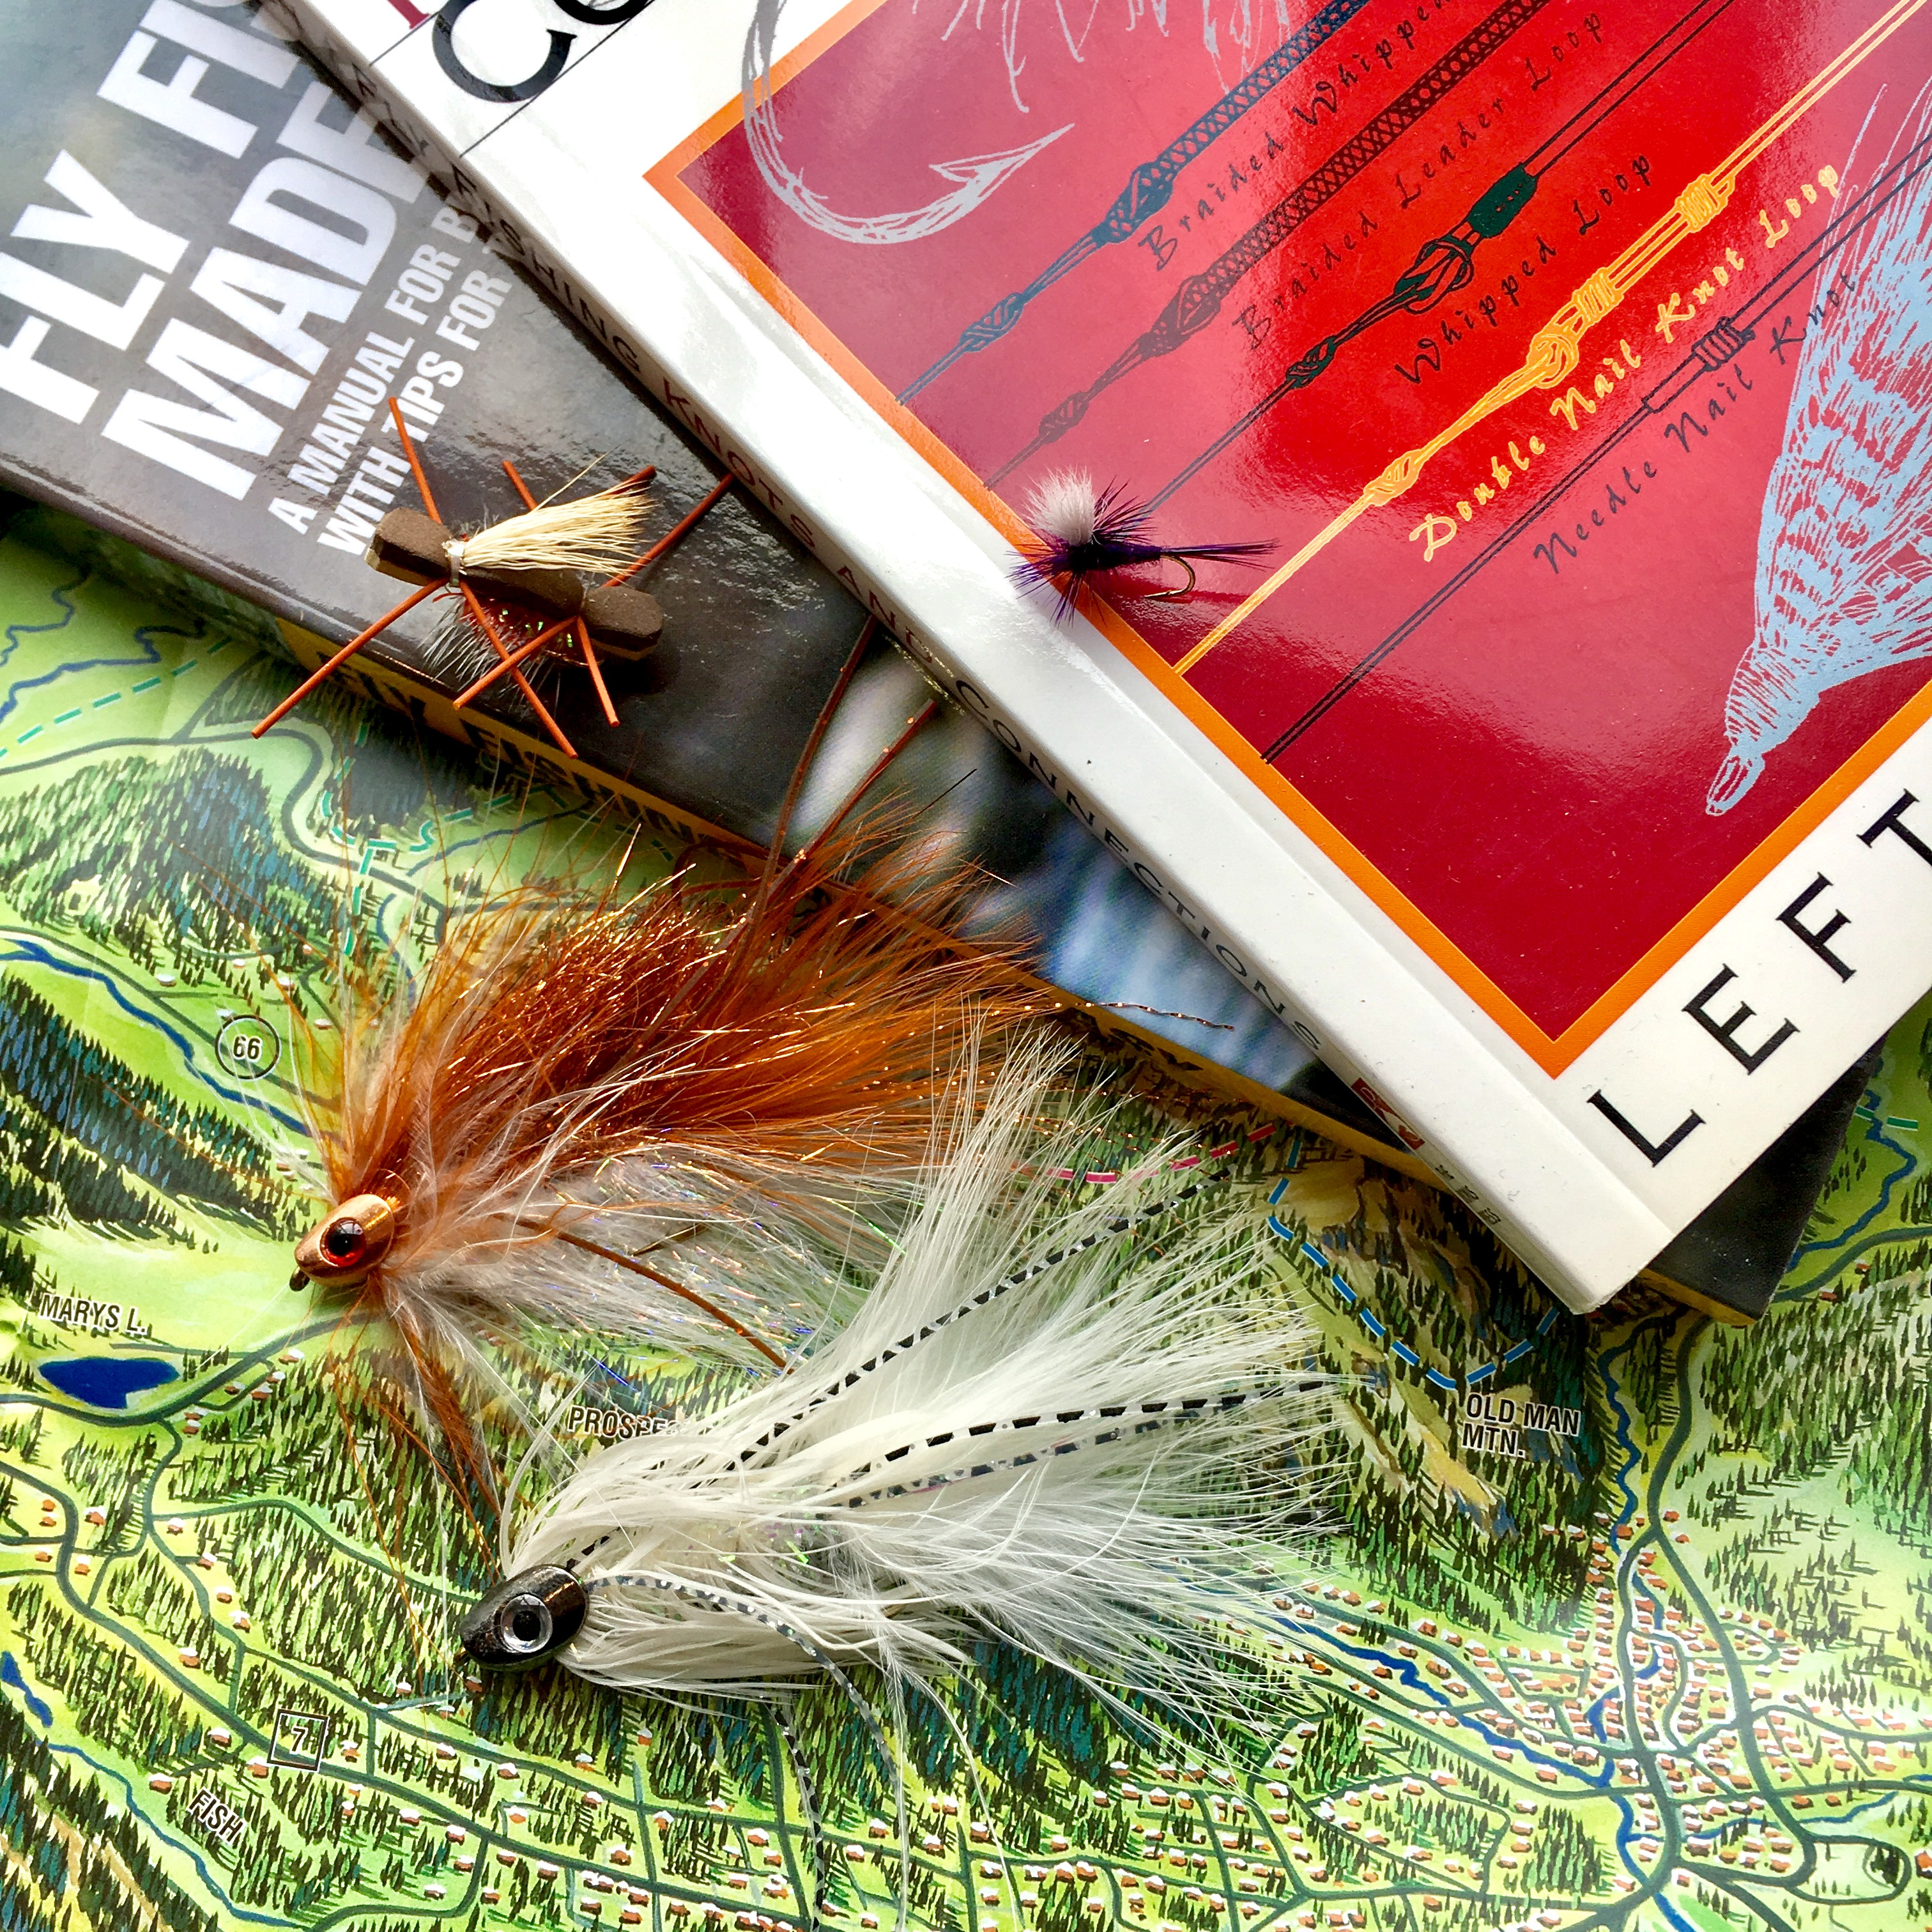 streamer flies and guide books